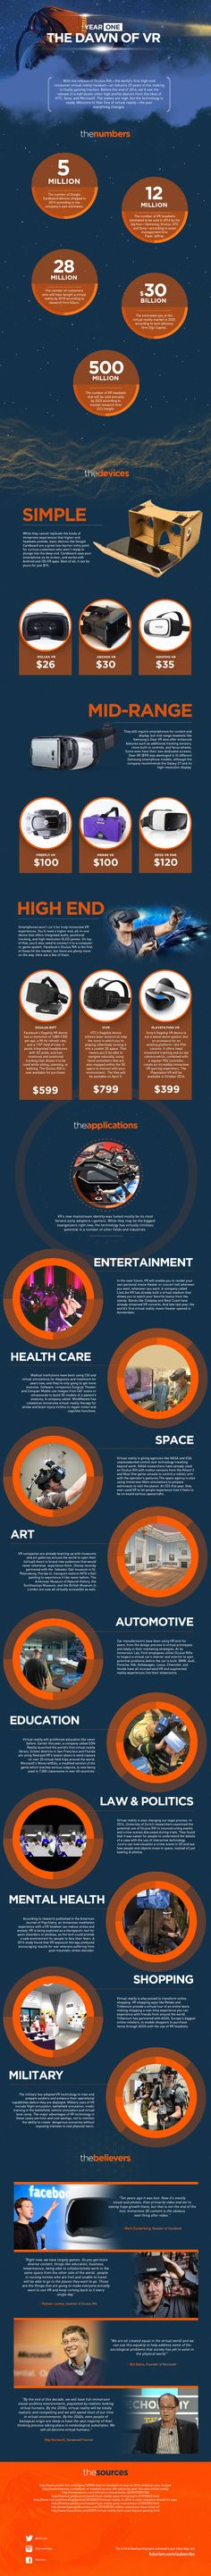 This is Year One—The Dawn of Virtual Reality — A look at the headsets that are leading the virtual revolution, and the applications for the technology that could change the world. — https://futurism.com/images/year-one-dawn-virtual-reality/